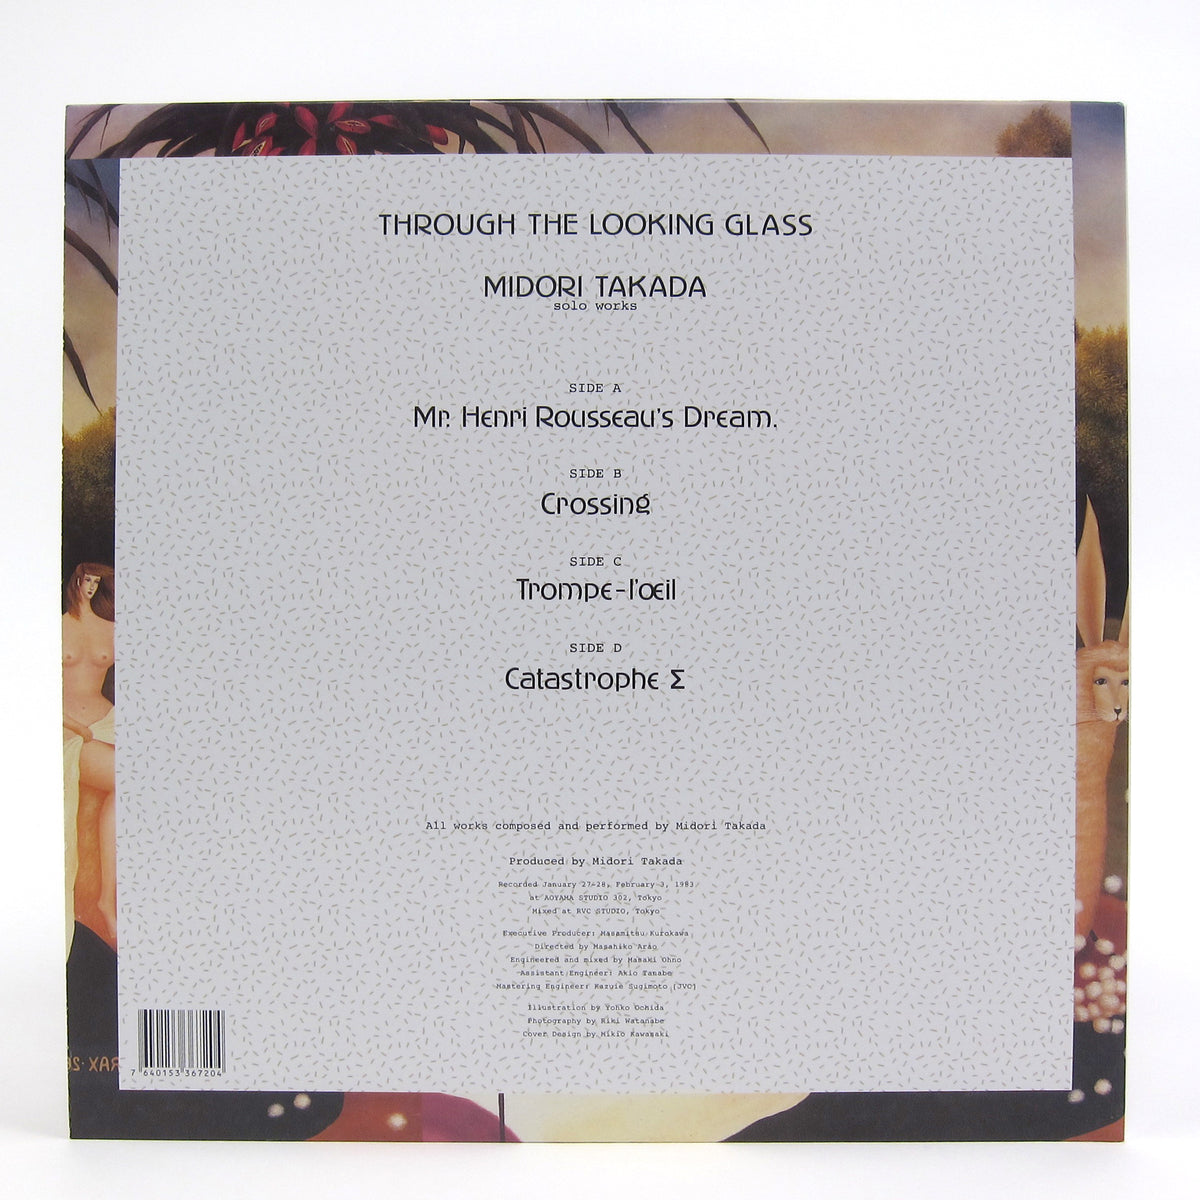 Midori Takada: Through The Looking Glass (45rpm Audiophile Edition, 180g, Colored Vinyl) Vinyl 2LP